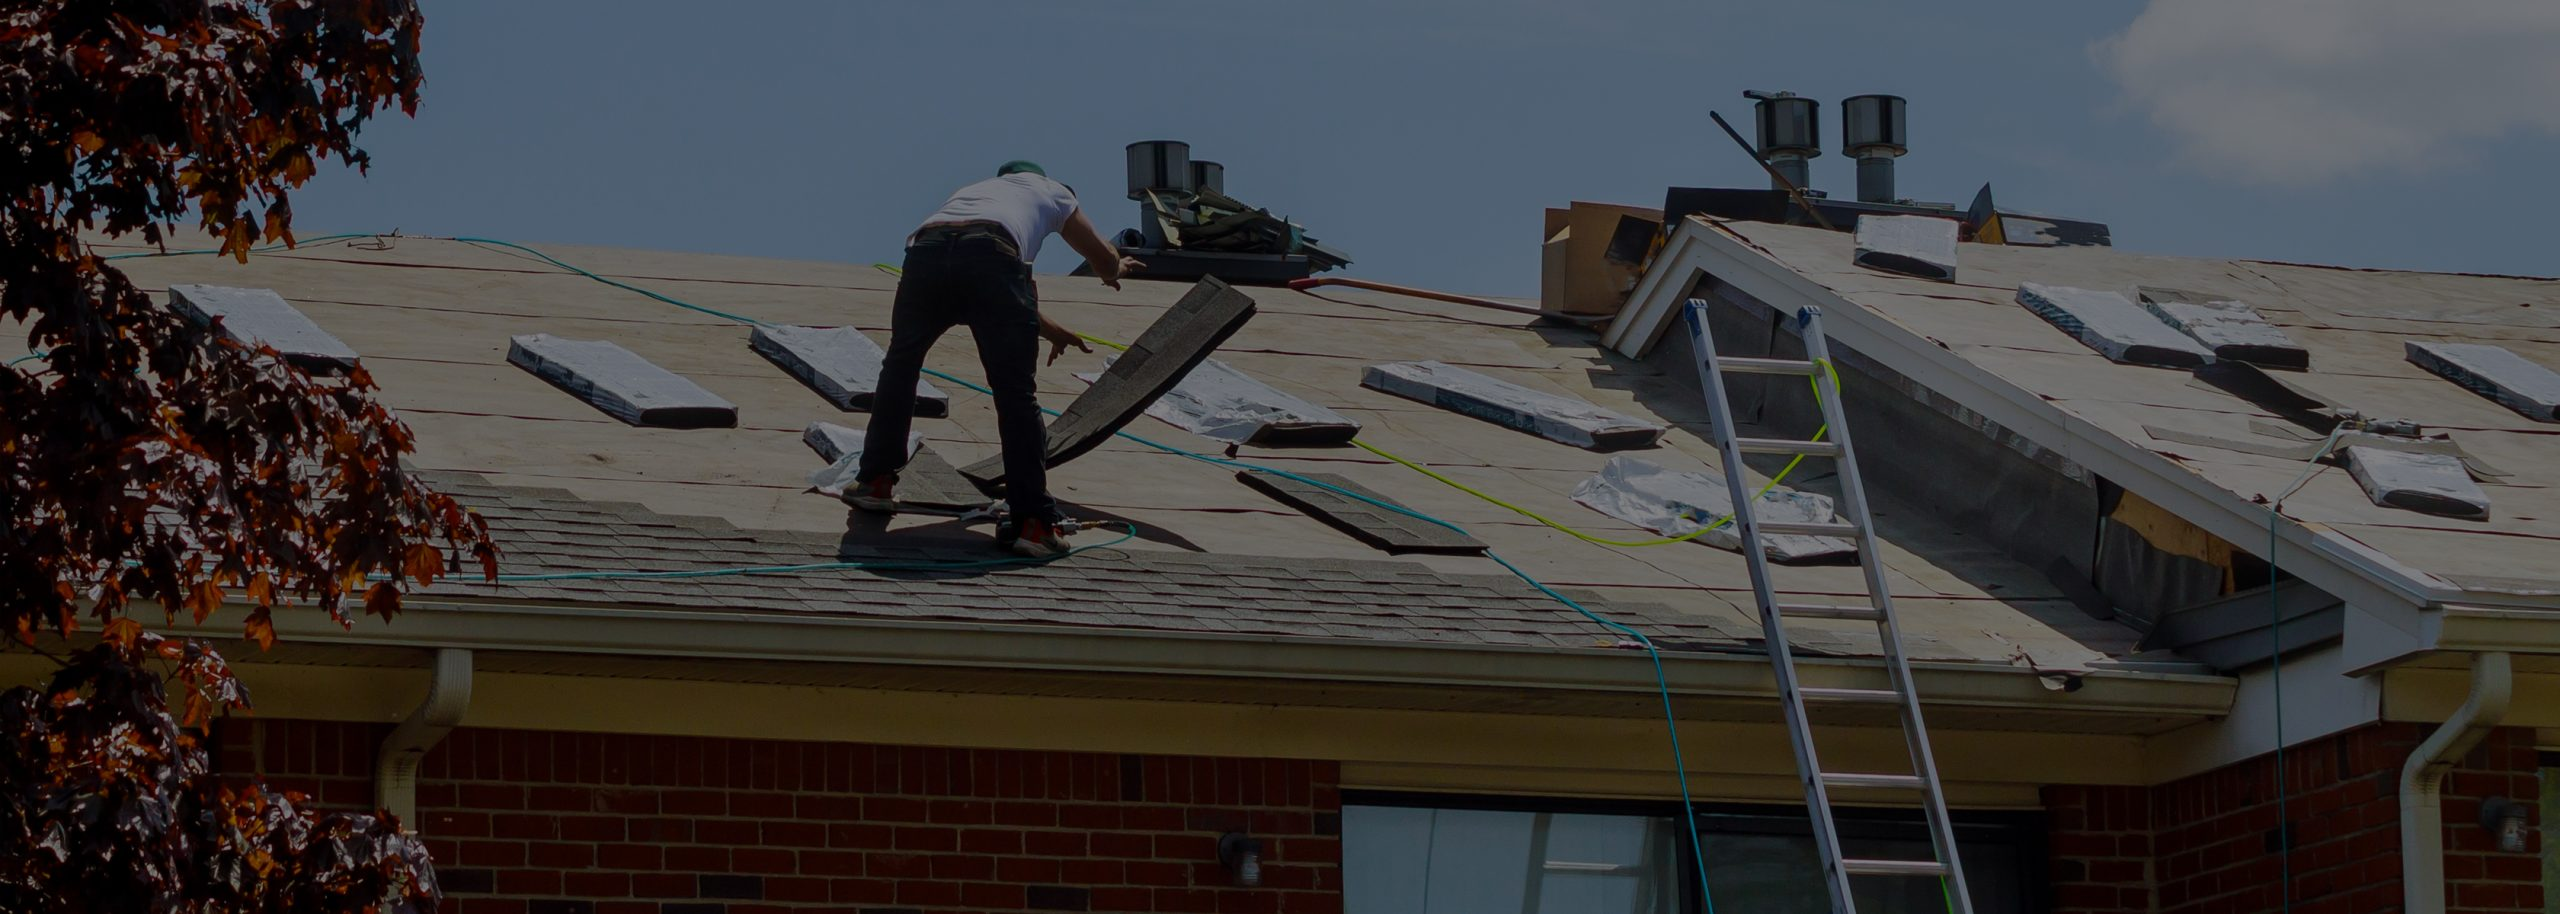 Roofing Leads header image